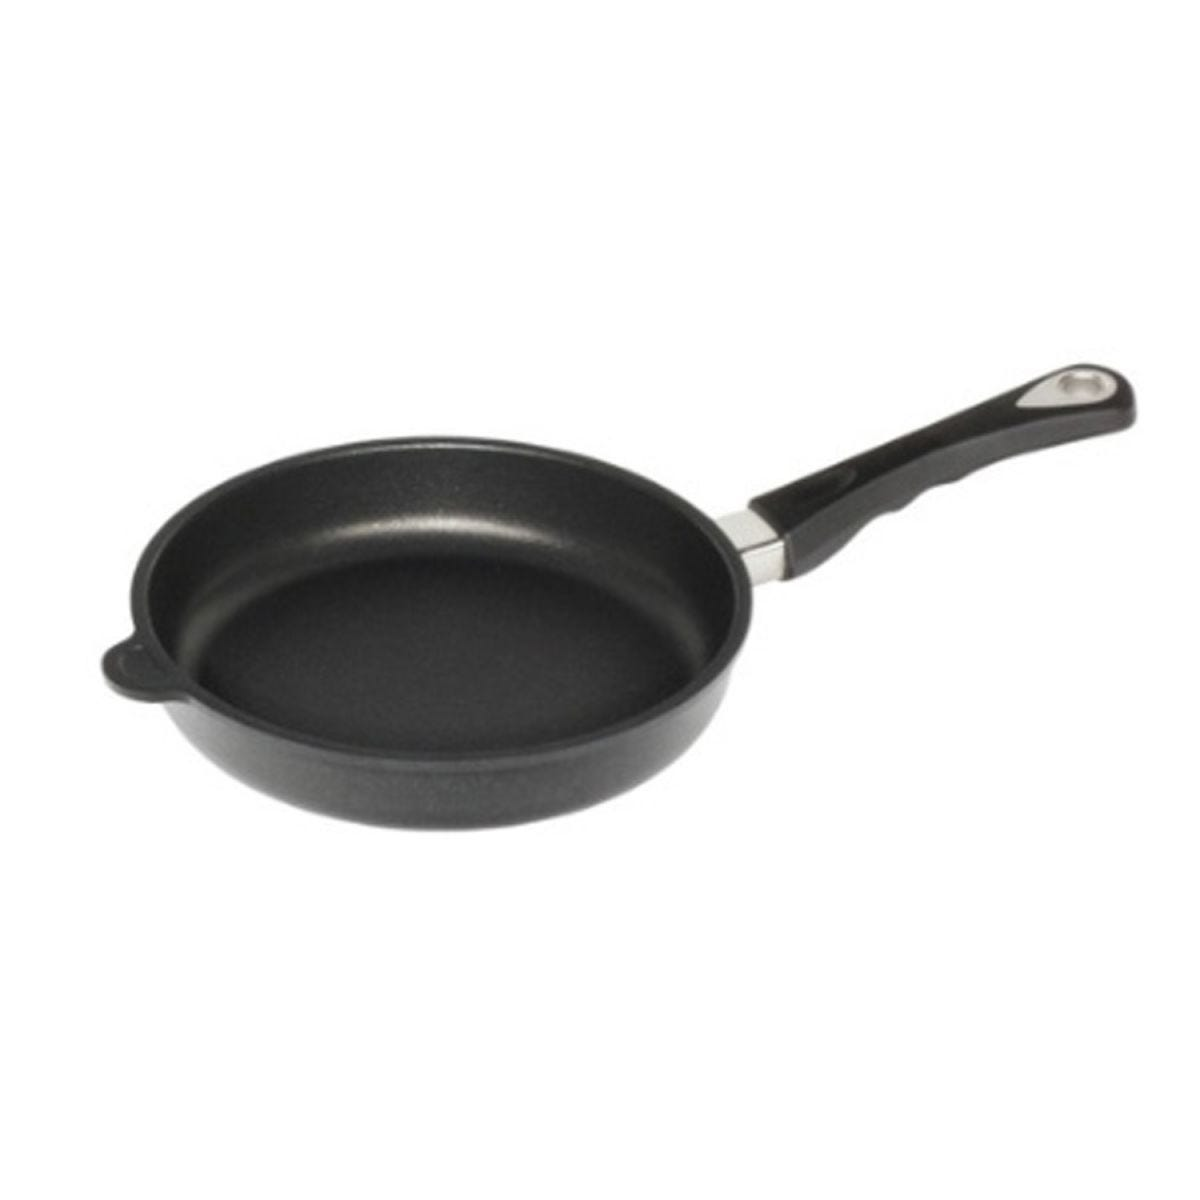 AMT Gastroguss 24cm The World's Best Frying Pan